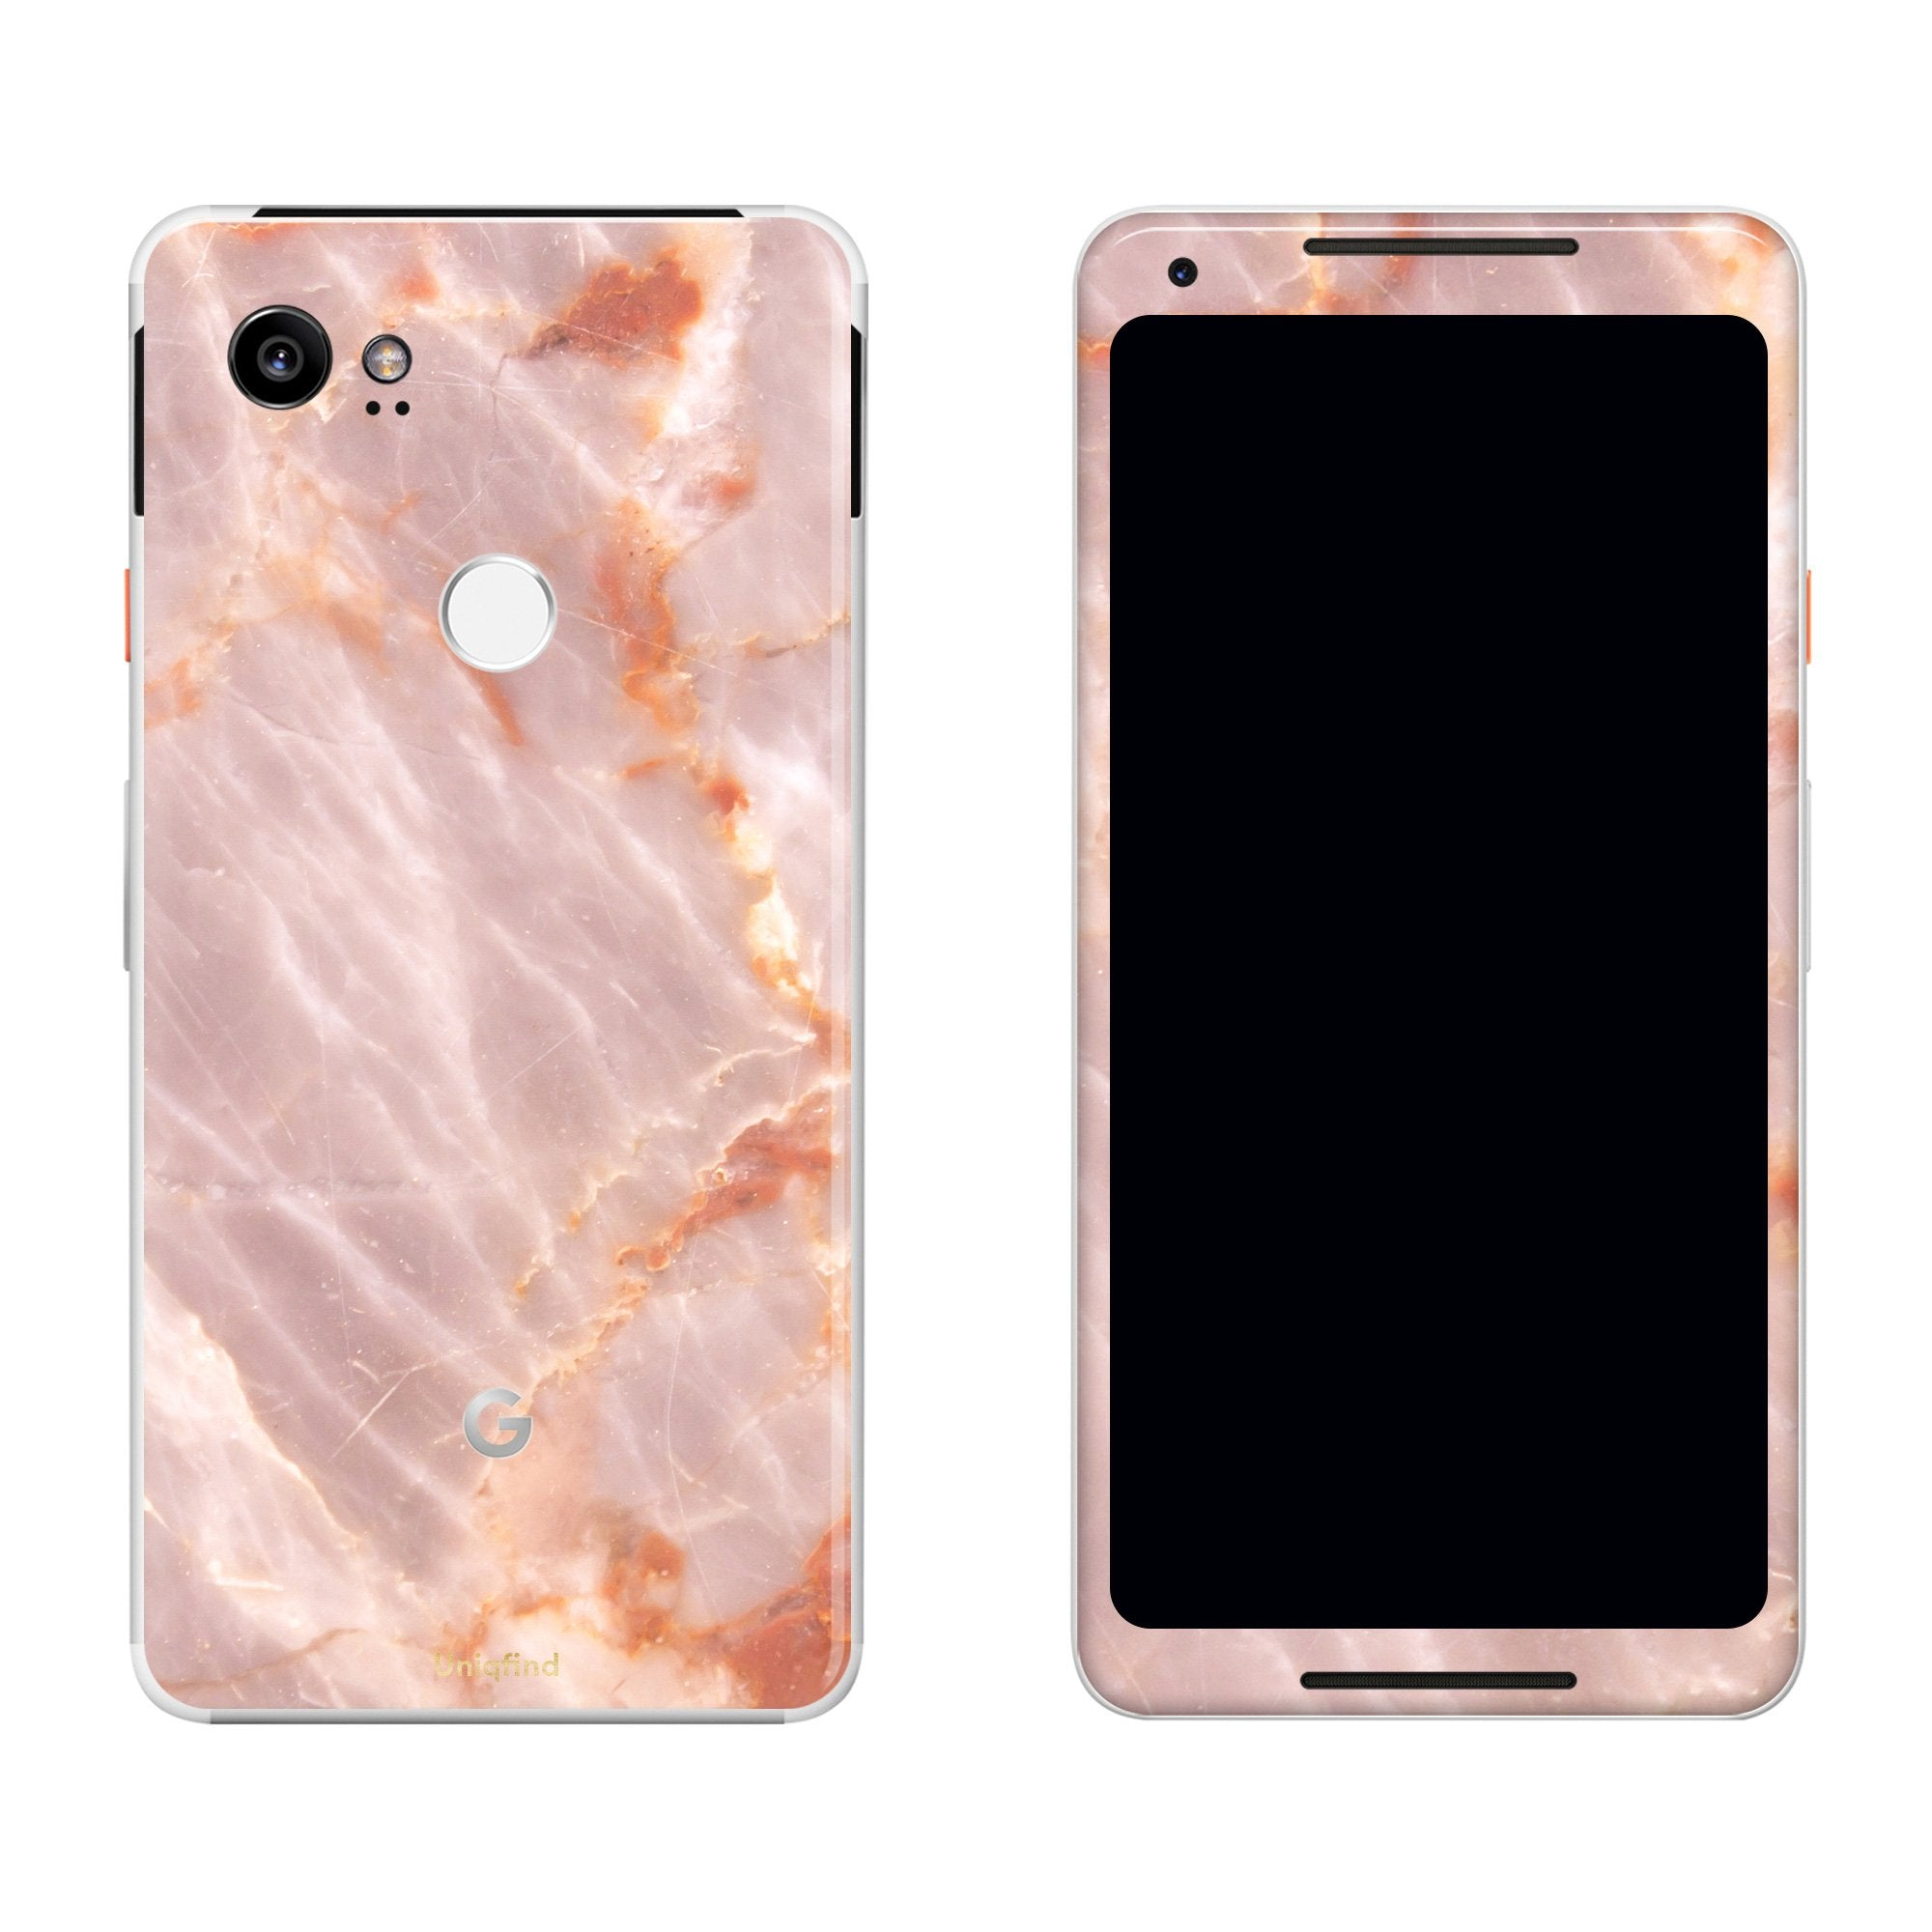 Blush Marble Pixel 2 XL Skin + Case